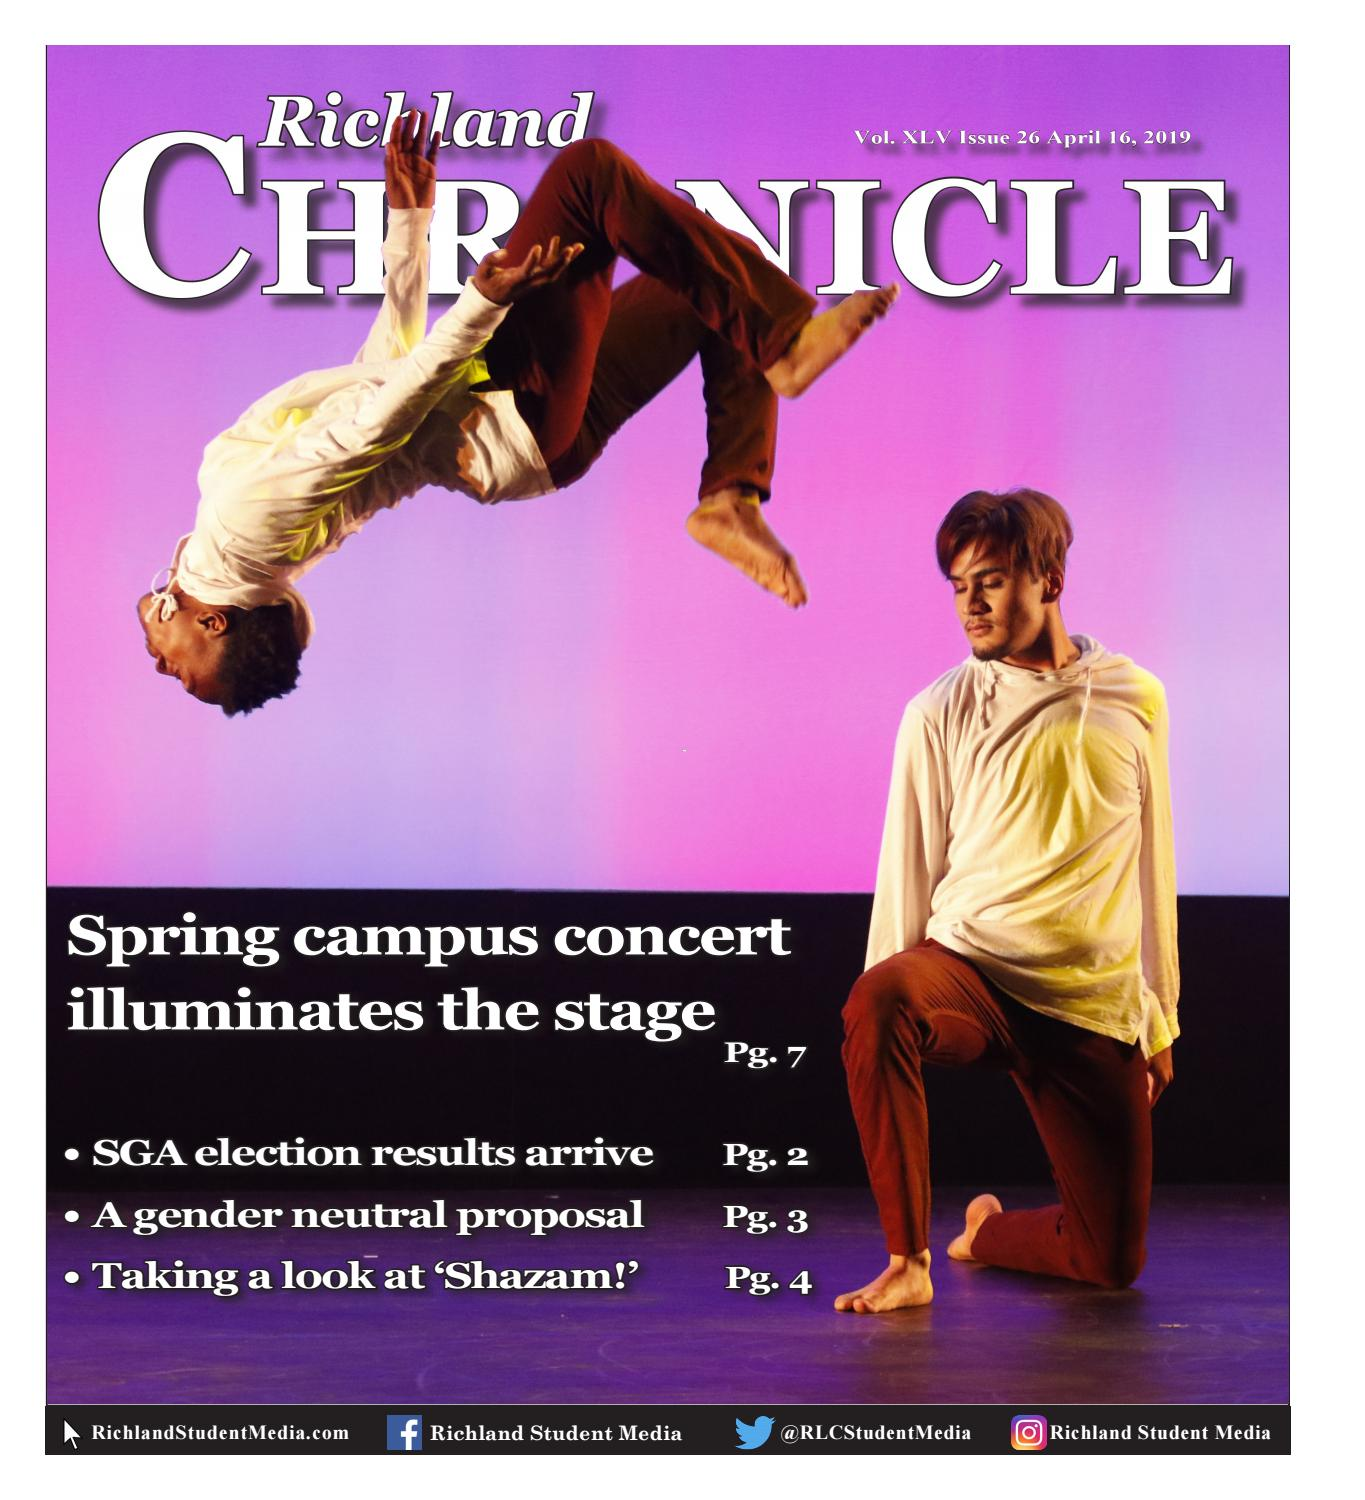 Richland Chronicle April 16th, 2019 by Richland Student ... on palmetto richland hospital map, richland college catalog, richland community college map, richland college history, richland city map, richland college dallas tx, richland decatur illinois, richland memorial hospital map, richland college field map,